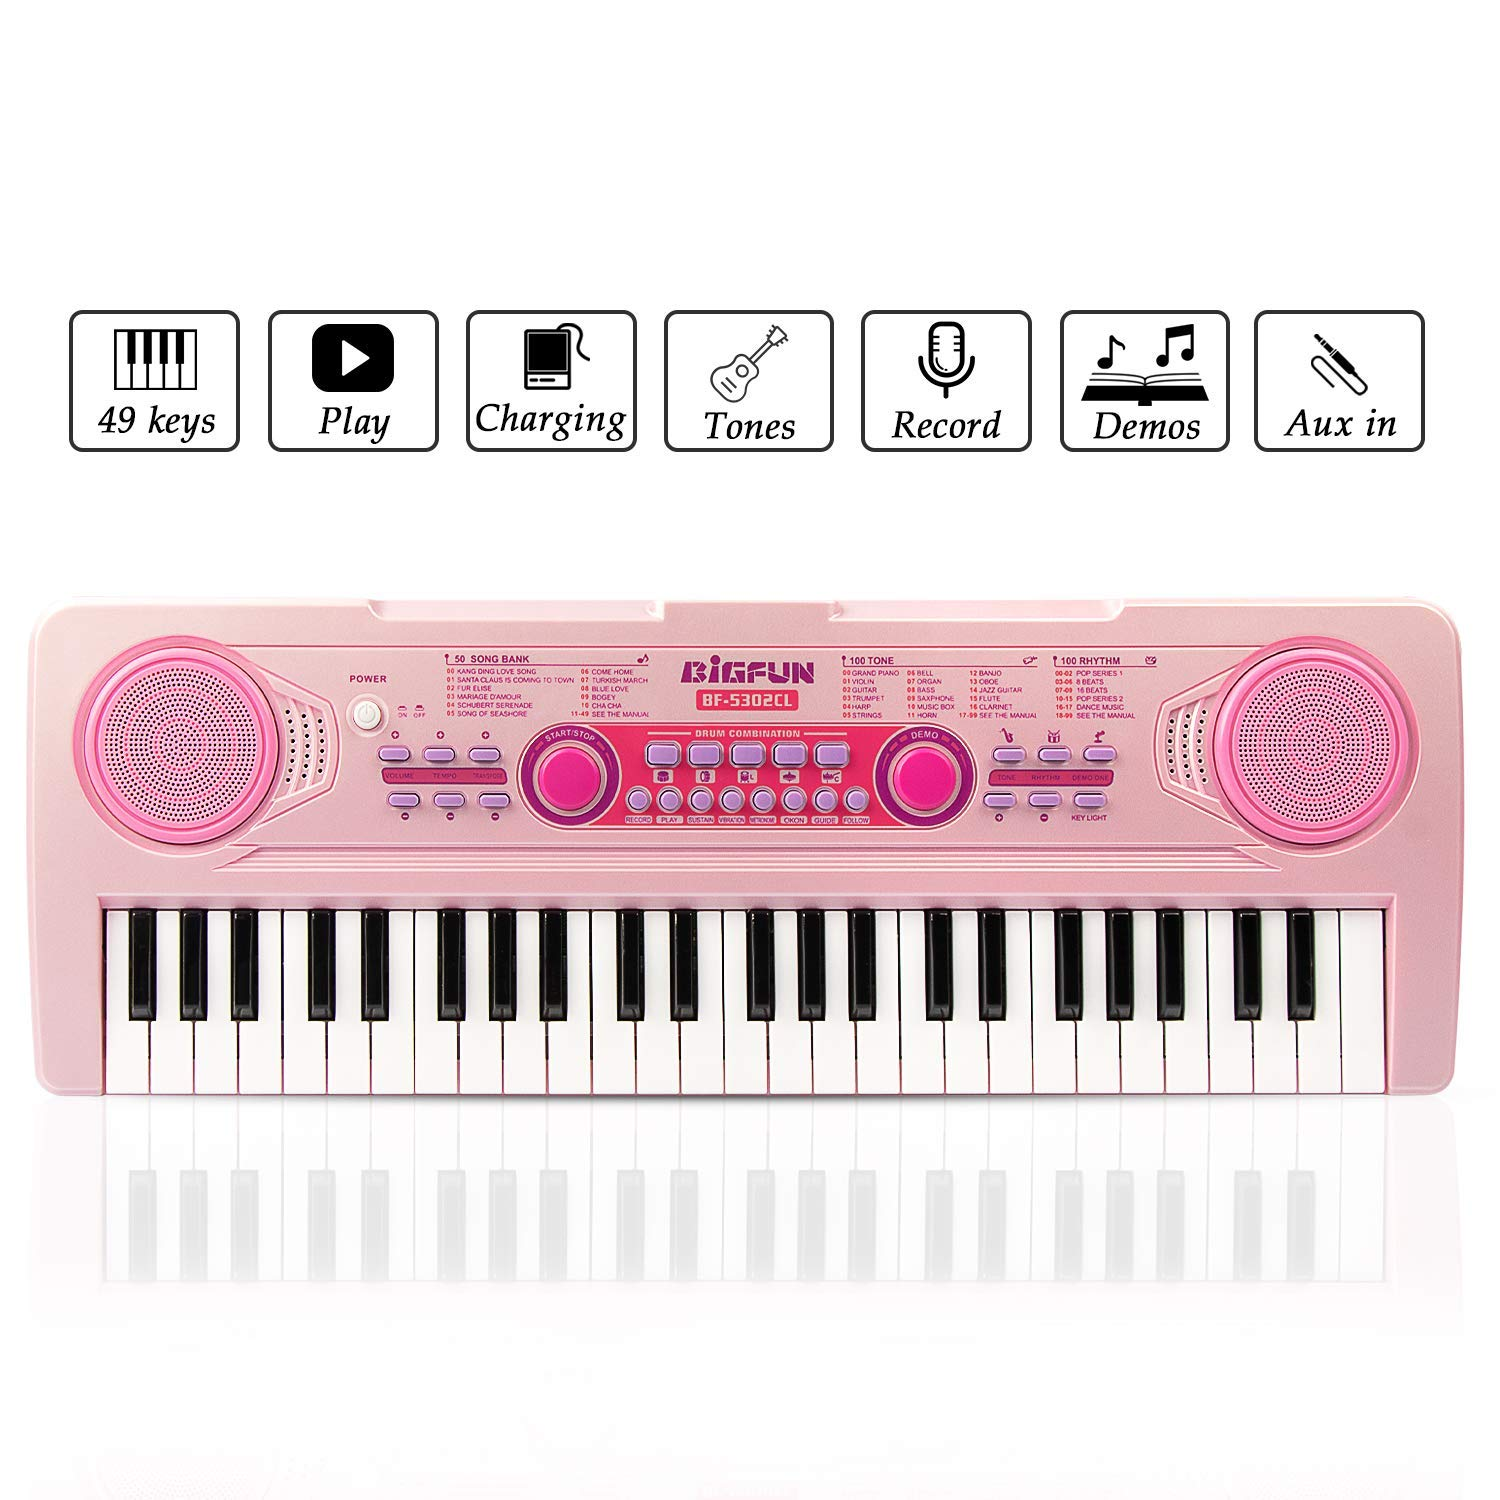 SAOCOOL Piano Keyboard, 49 Keys Multi-Function Charging Electronic Kids Piano Keyboard Music Educational Toy for Children Over 3 Years Old (Pink) by SAOCOOL (Image #1)